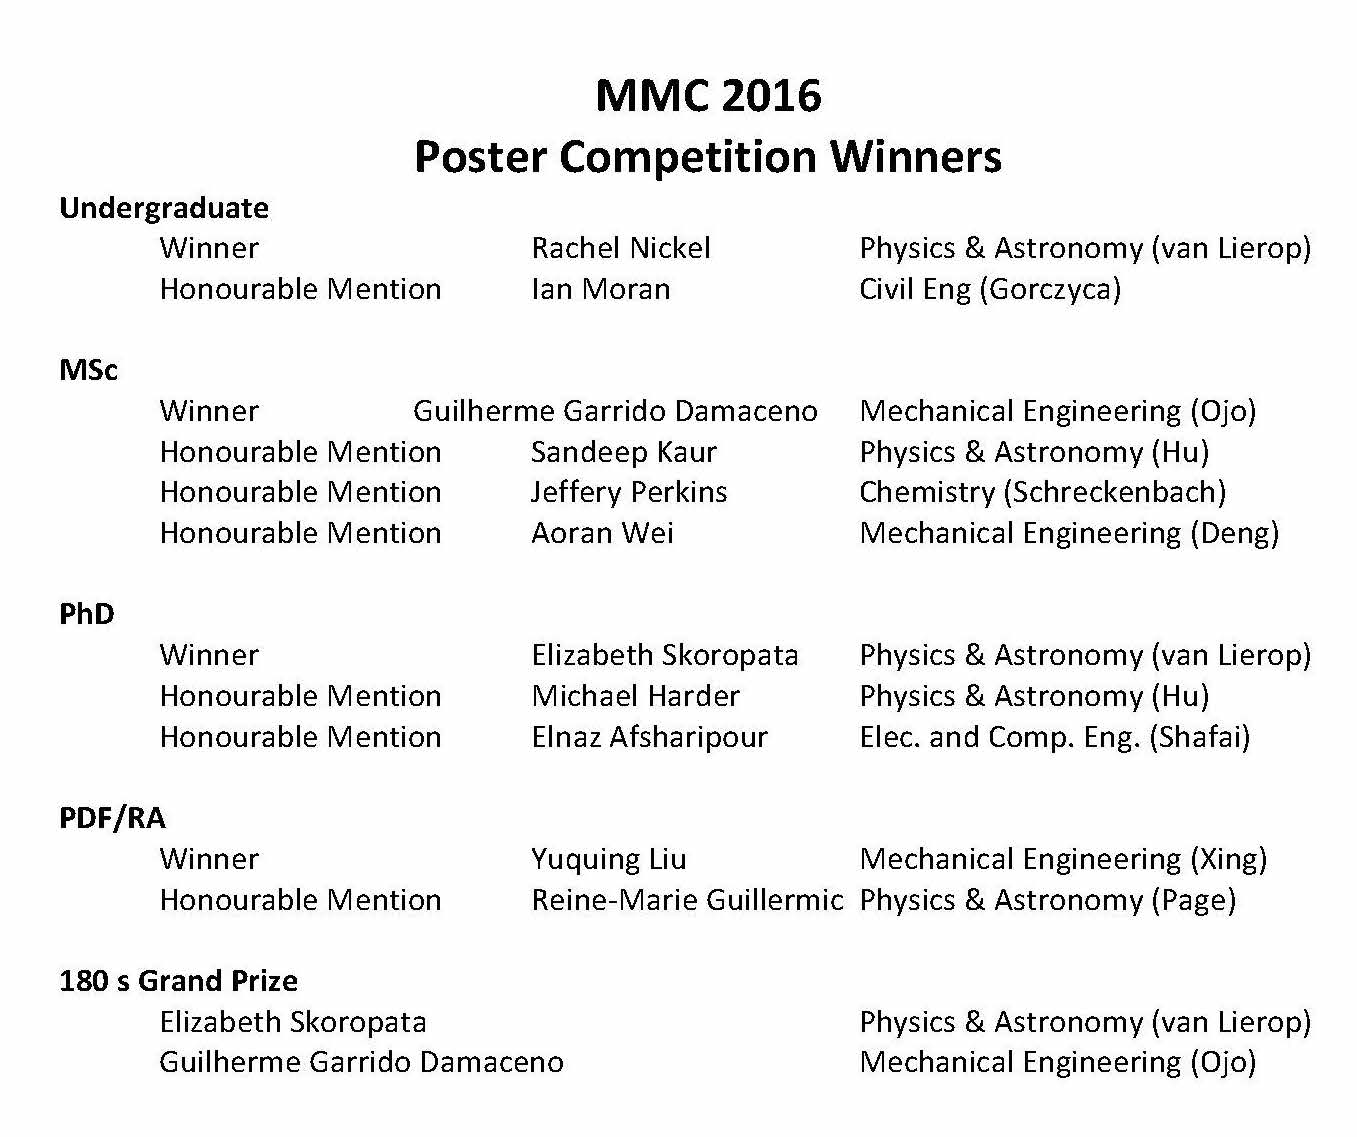 MMC 2016 Award Winners